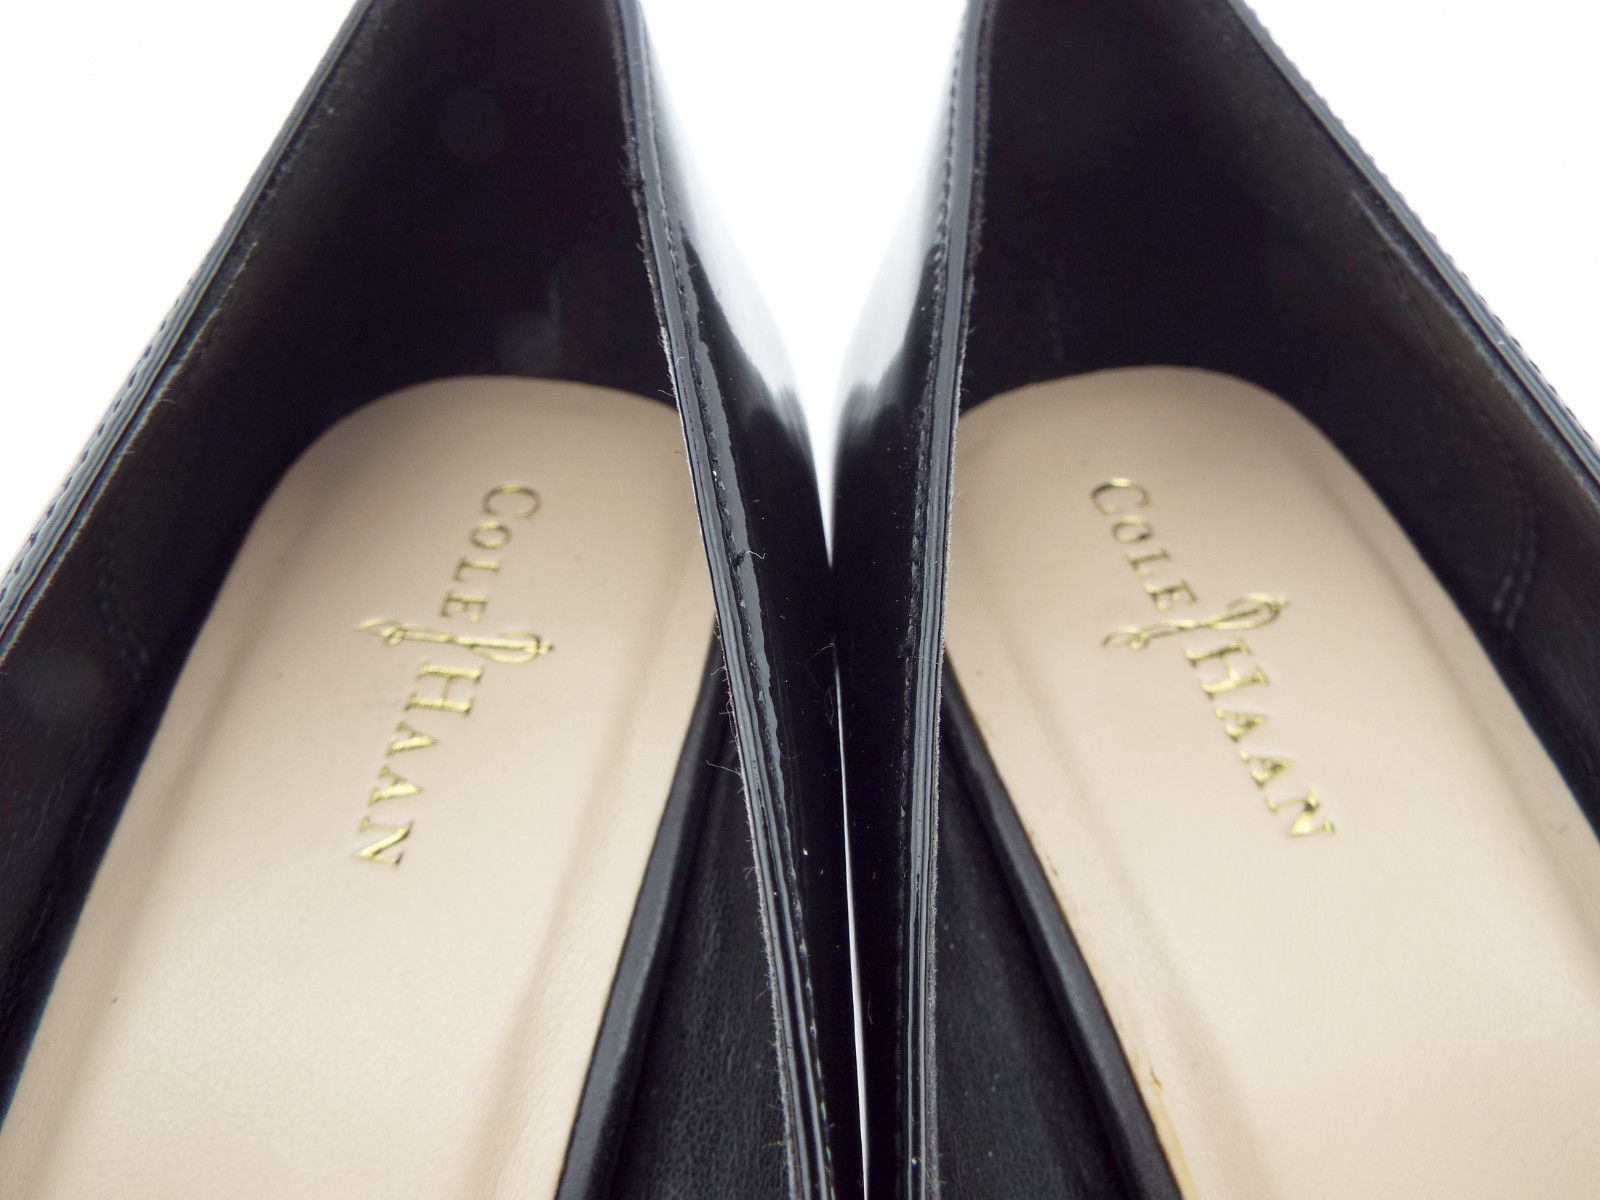 COLE HAAN Size 7.5 Black Patent Mid-Heel Pumps Shoes 7 1/2